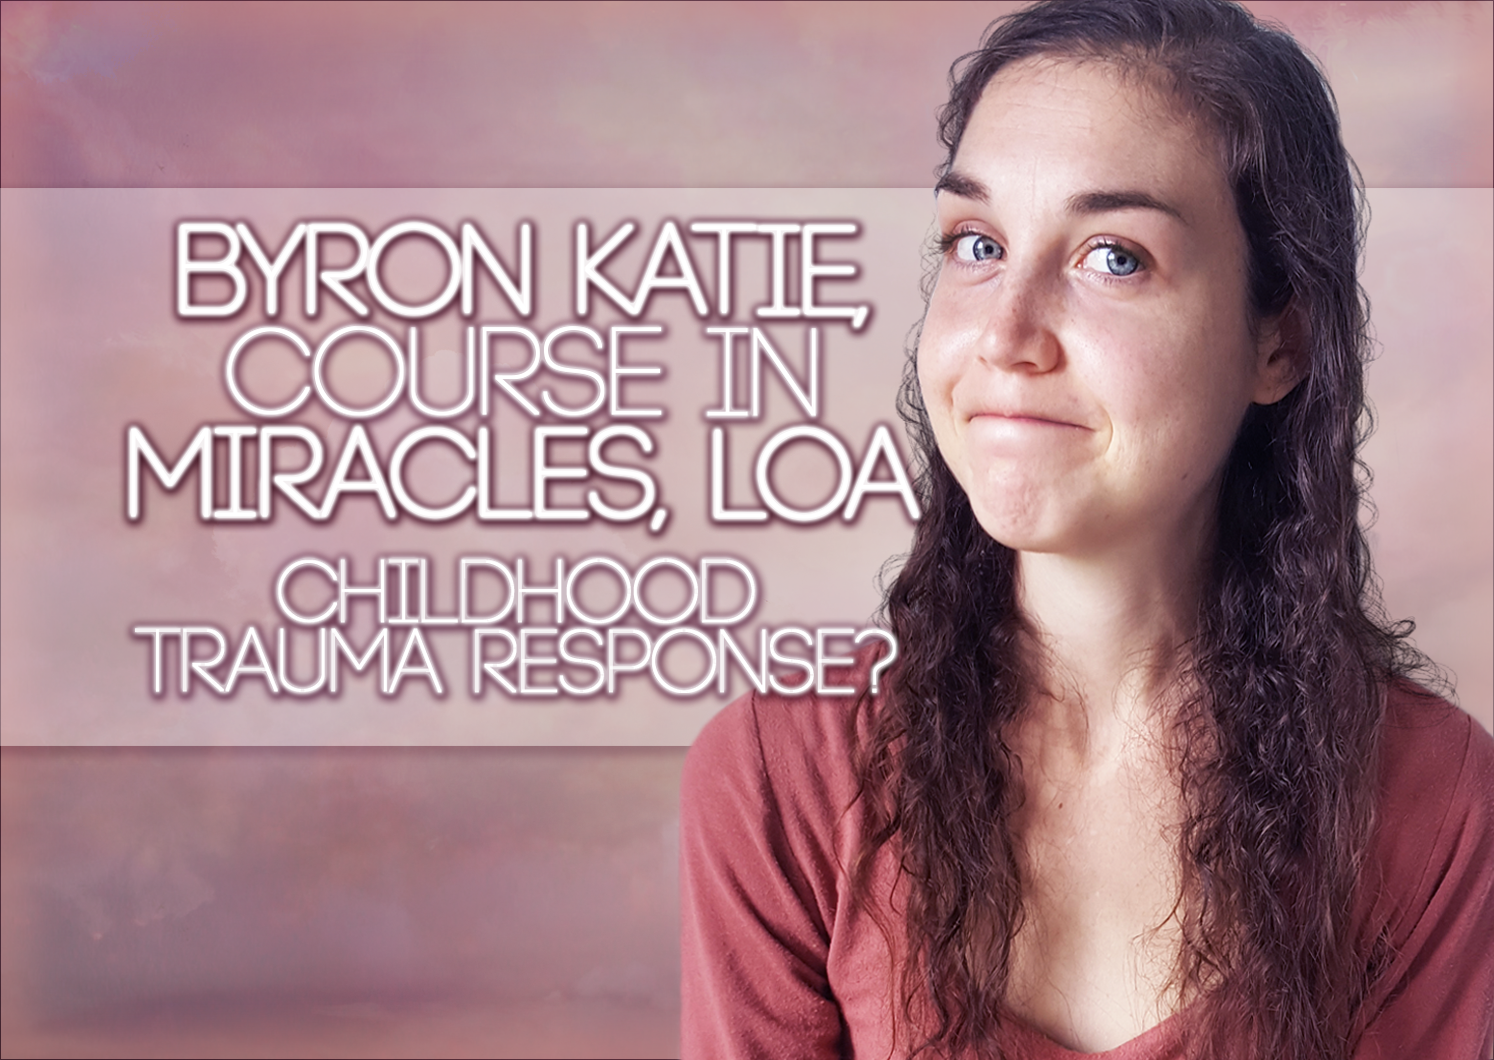 Byron Katie, Course In Miracles, LOA – Childhood TRAUMA Responses?